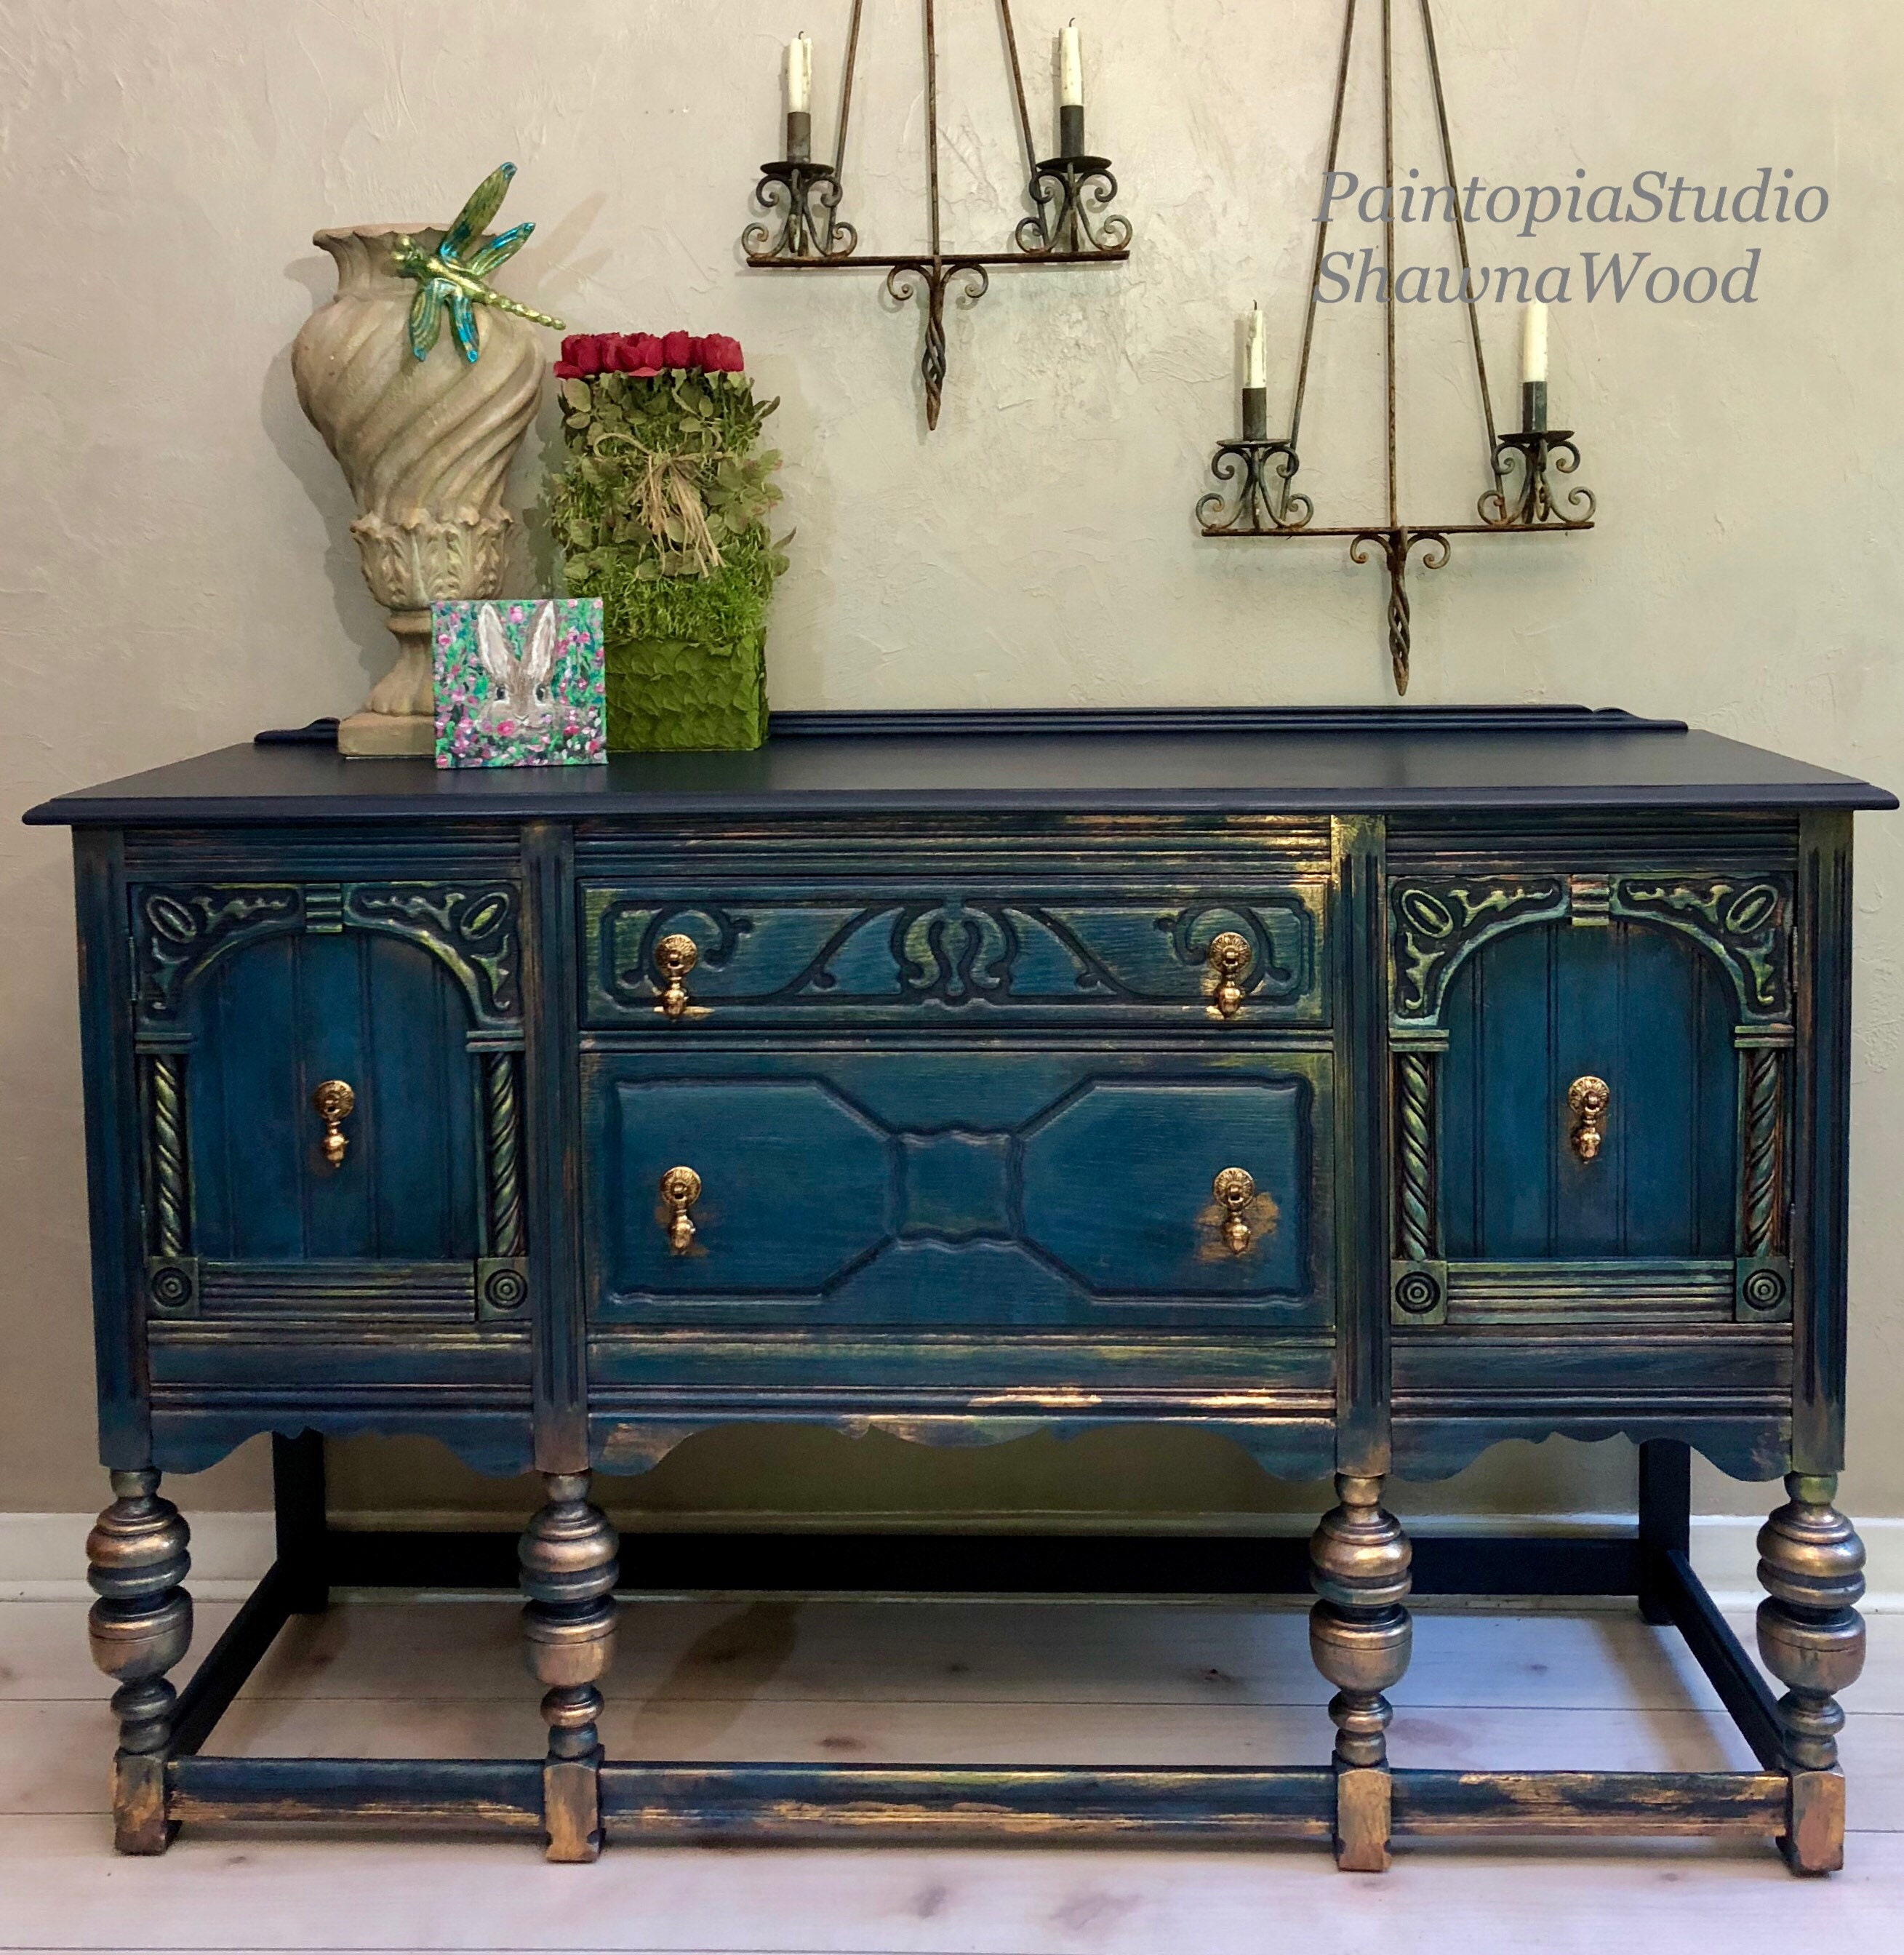 Dining Room Buffet: Vintage Sideboard Dining Room Buffet Sideboard Jacobean